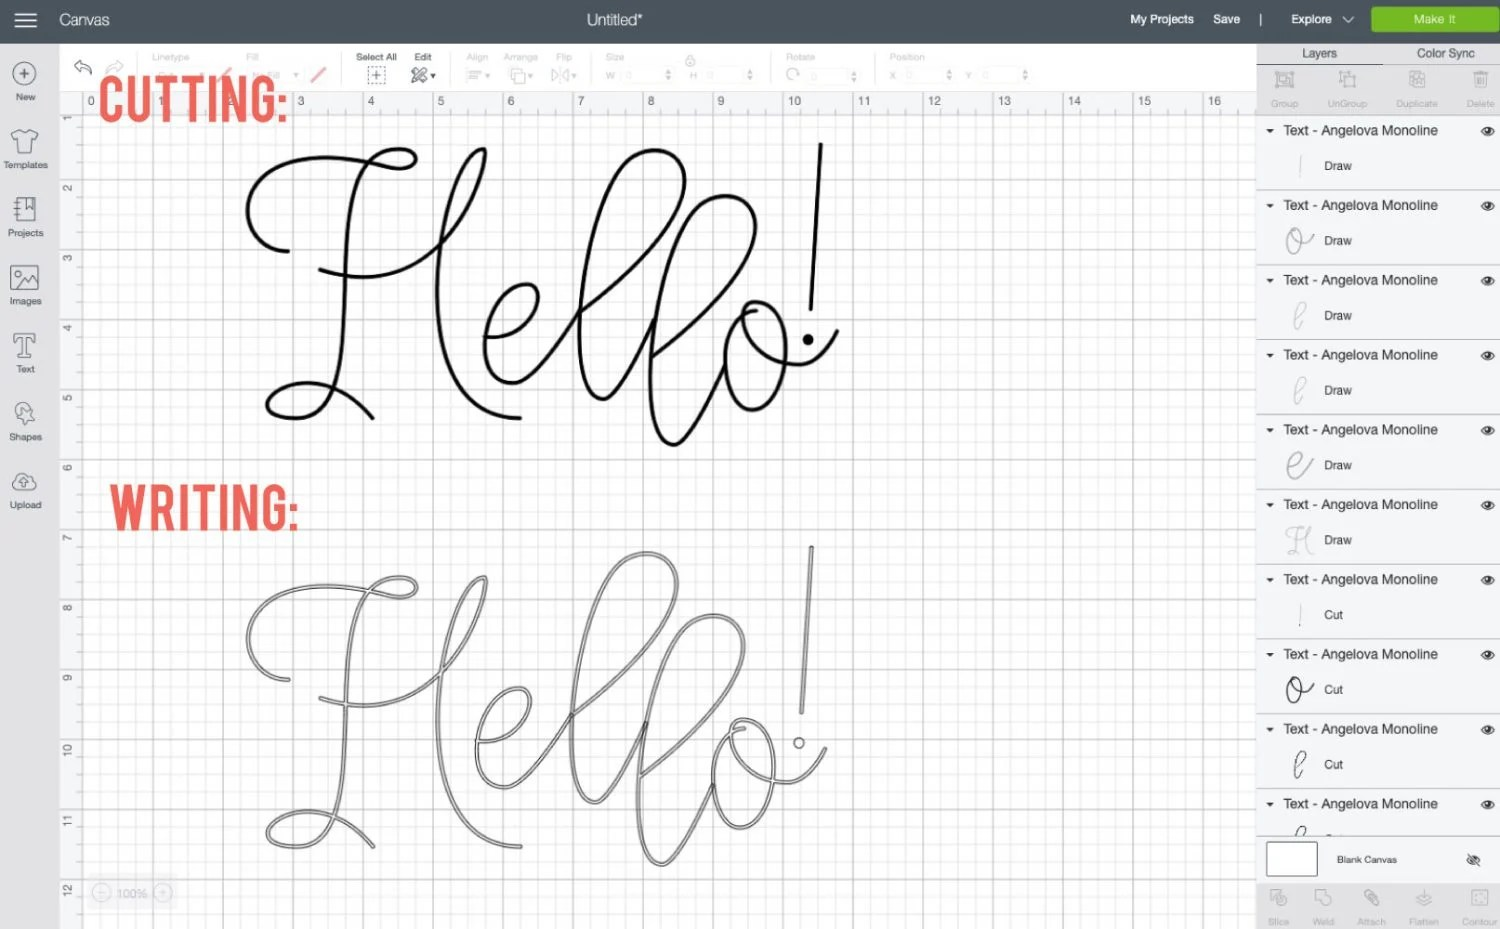 Comparison of Angelova font cutting and writing in Design Space